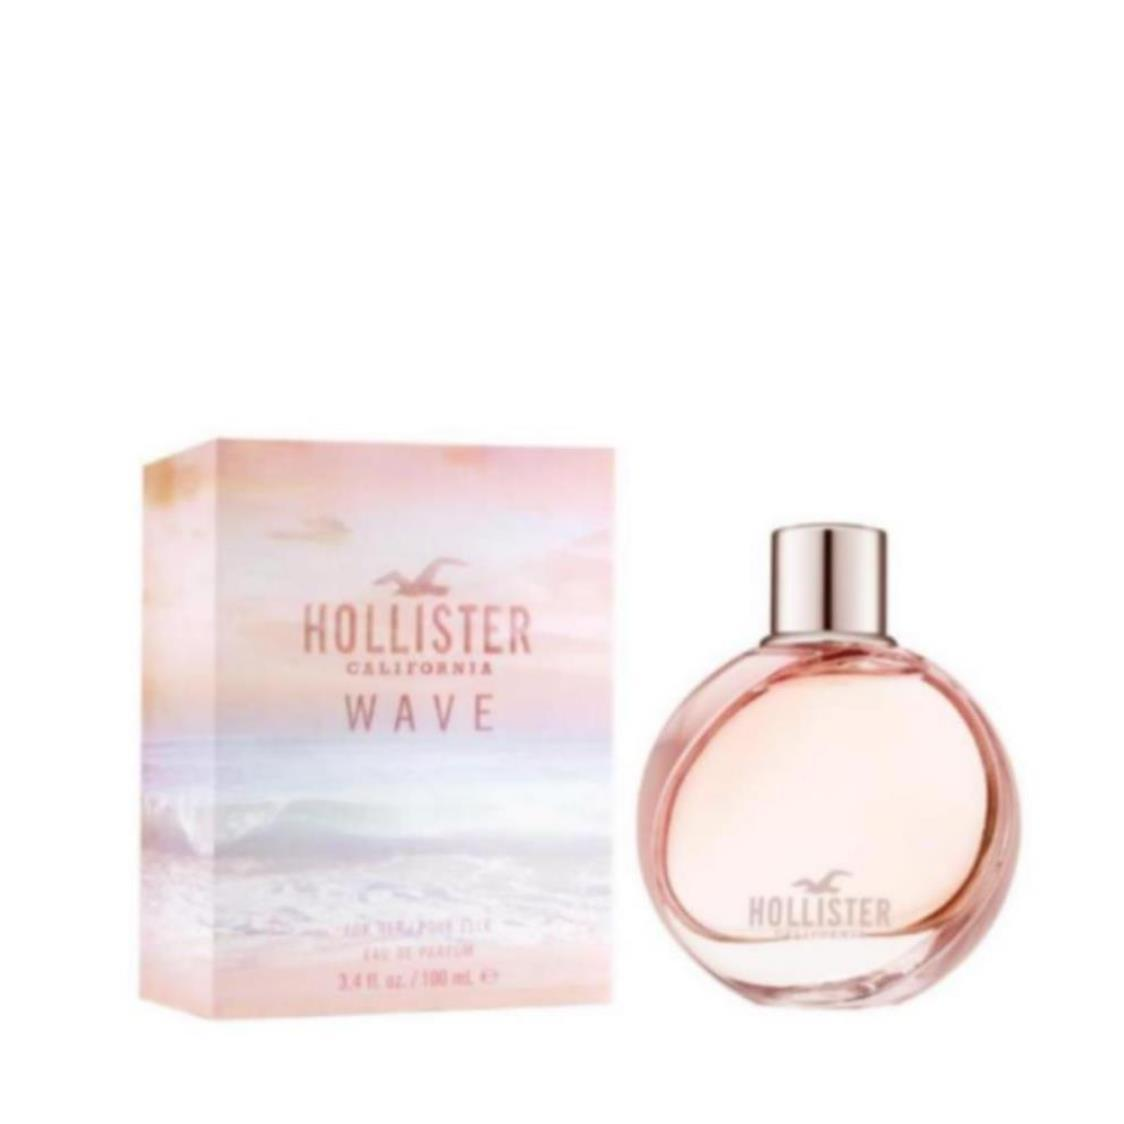 Wave For Her EDP